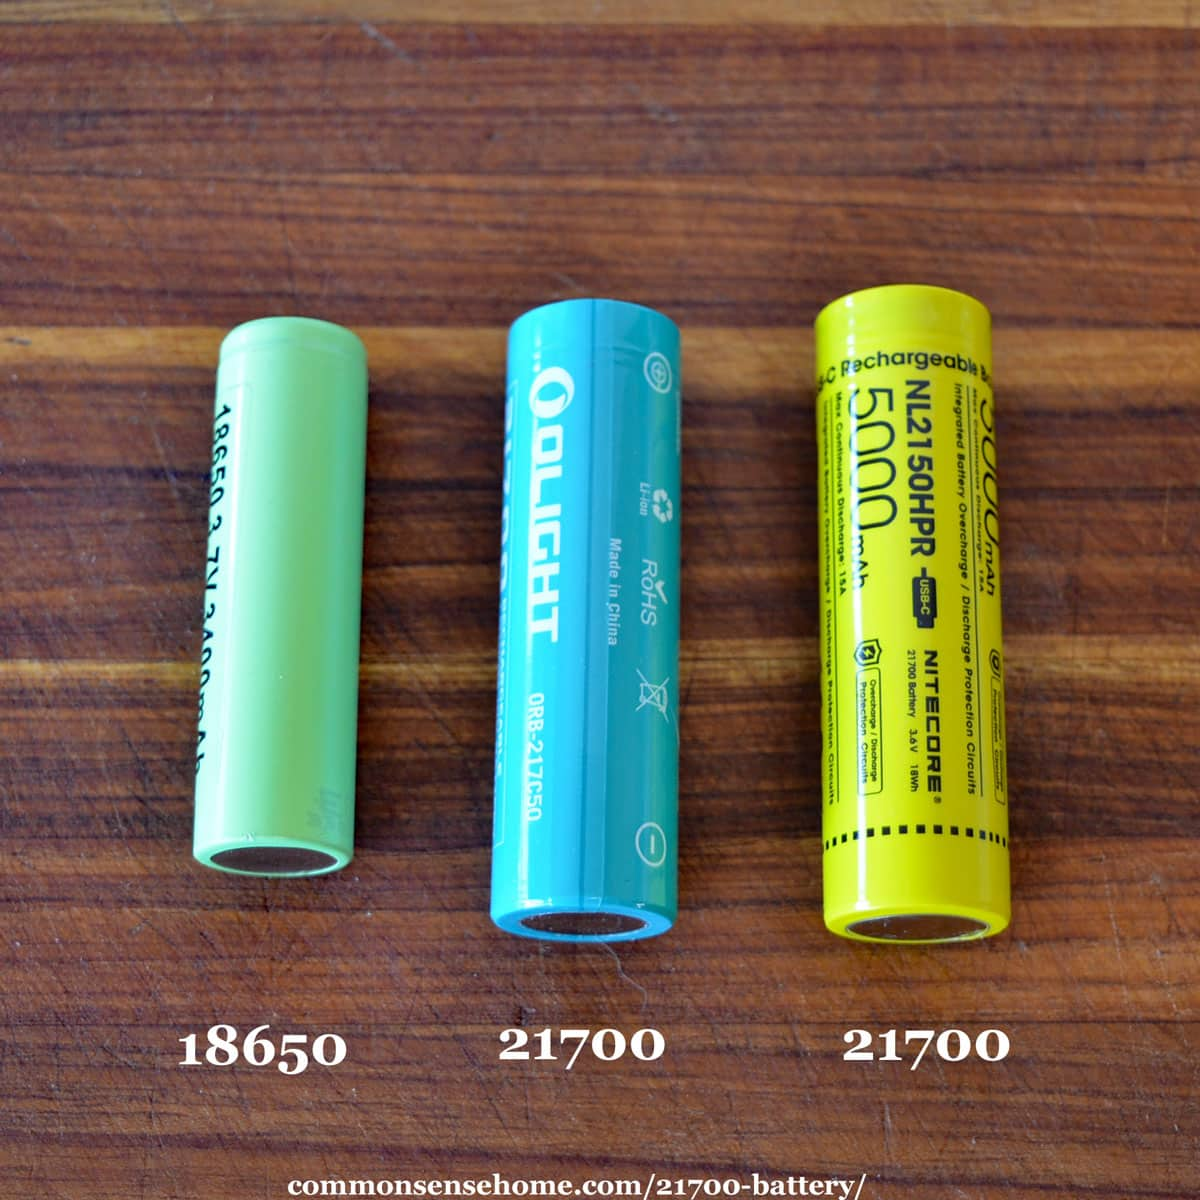 size comparison of 18650 and 21700 batteries